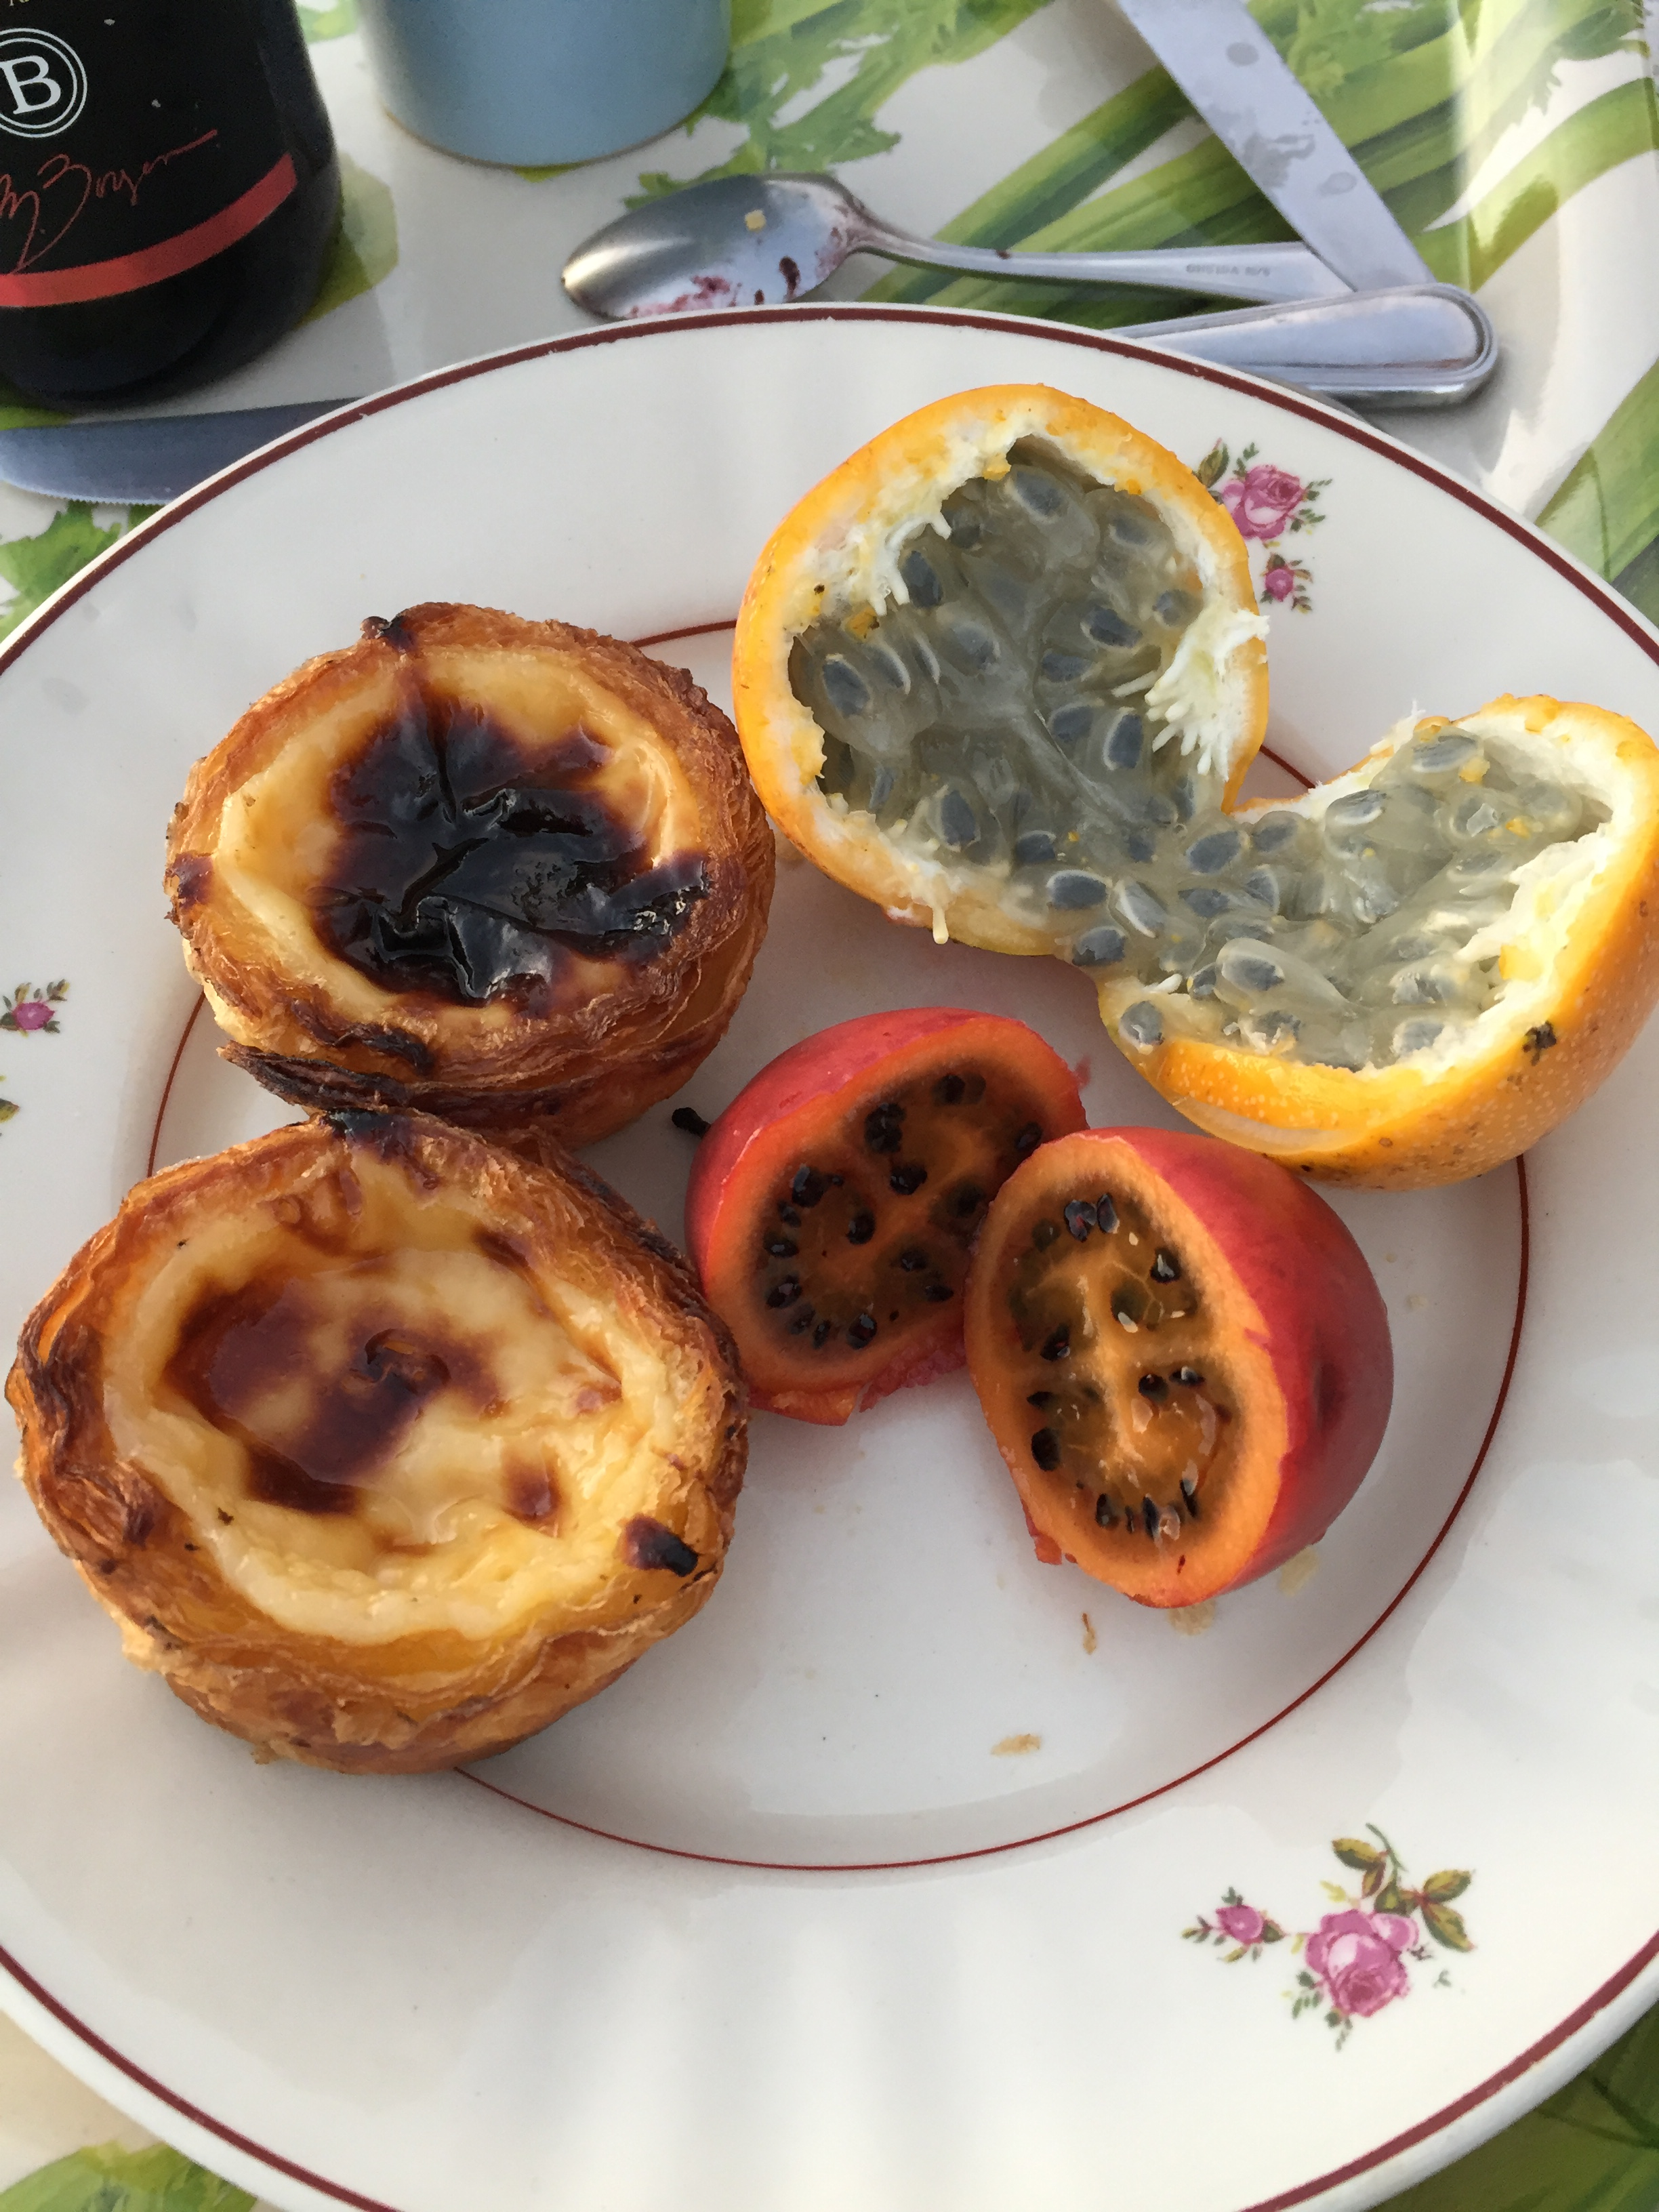 Food And Drinks In Madeira Island By Milda At Flymildcom